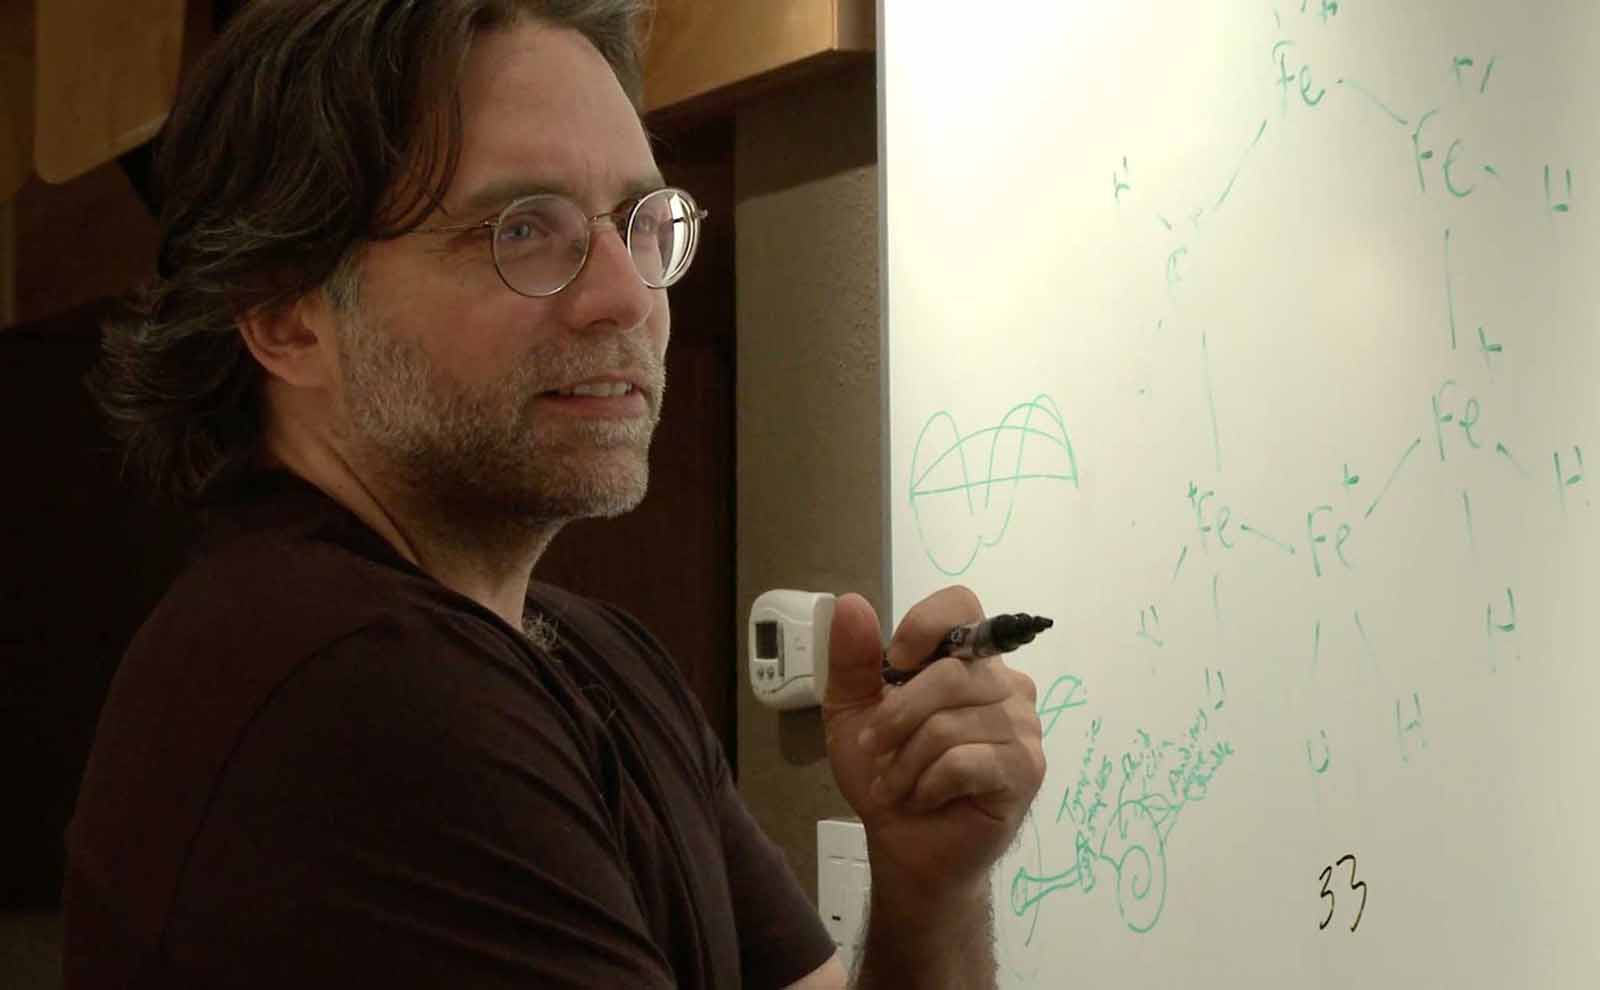 As NXIVM cult leader Keith Raniere awaits sentencing, how is he handling prison life? Not well, according to reports.